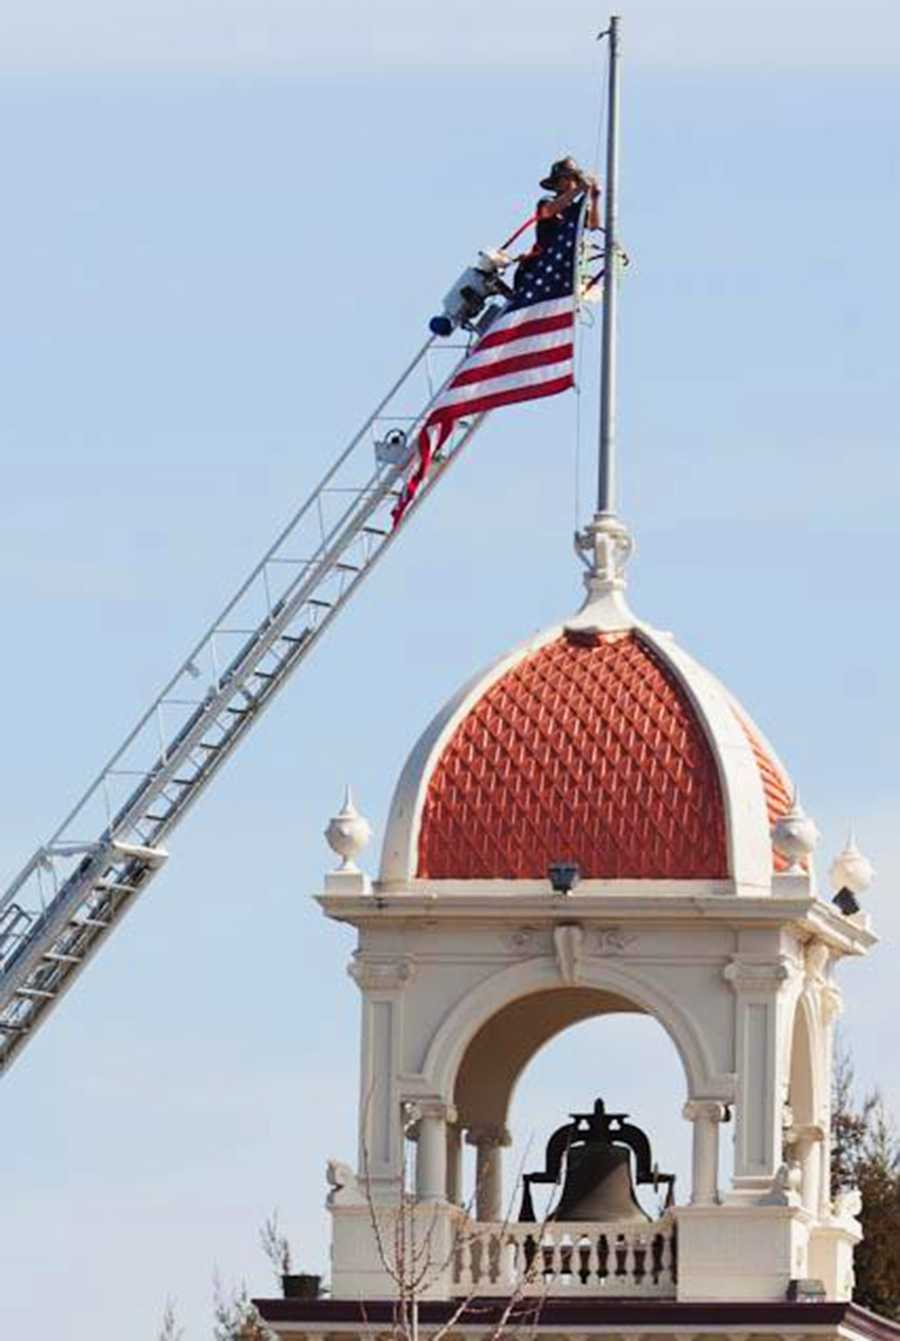 A Santa Cruz firefighter lowers a U.S. flag on top of a clock tower on Pacific Avenue to mourn the slain detectives. (Feb. 27, 2013)